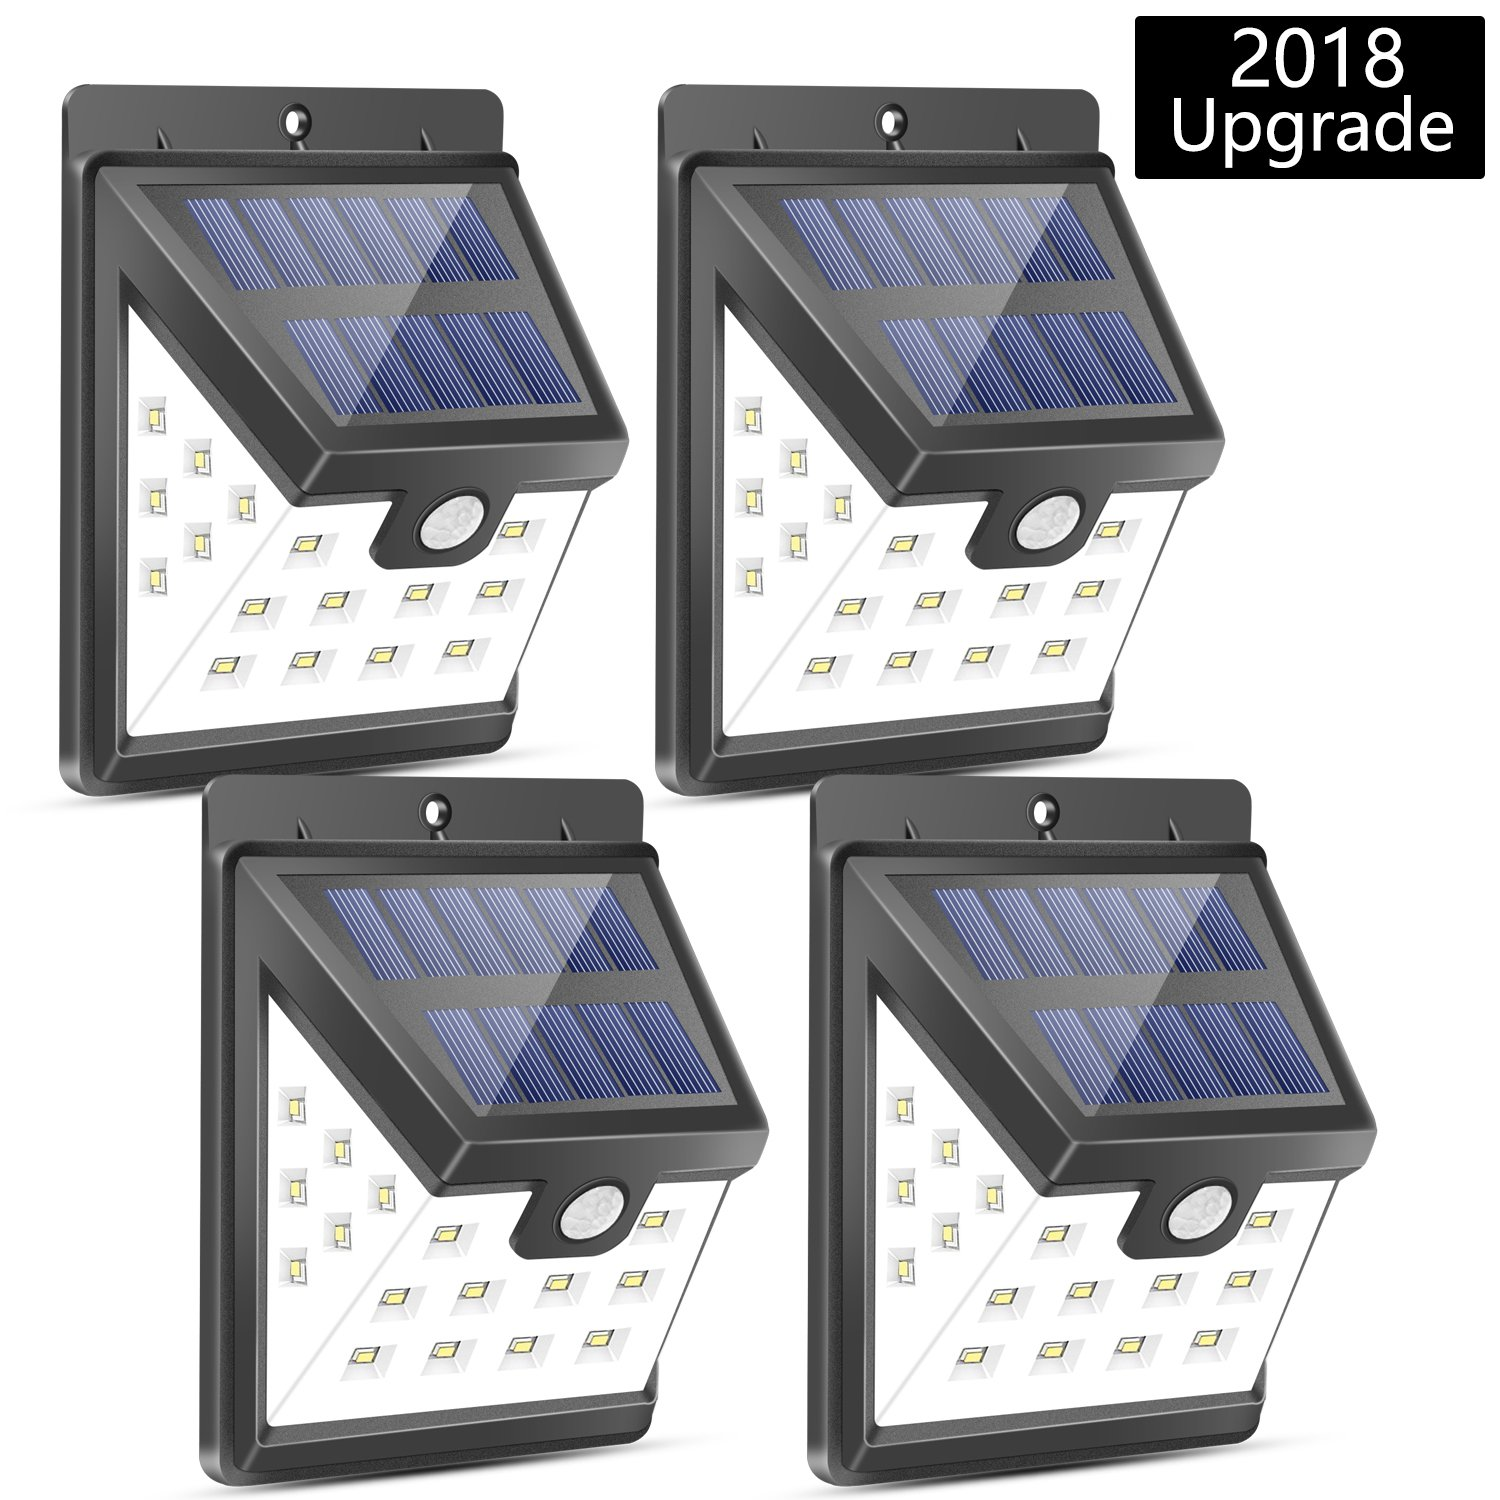 Urlitoy 22 LED Solar Lights Outdoor Wide Angle Illumination Motion Sensor Waterproof Wall Light Wireless Security Night Light for Outdoor Wall,Back Yard,Fence,Garage,Garden,Driveway(364LM,4 Packs)